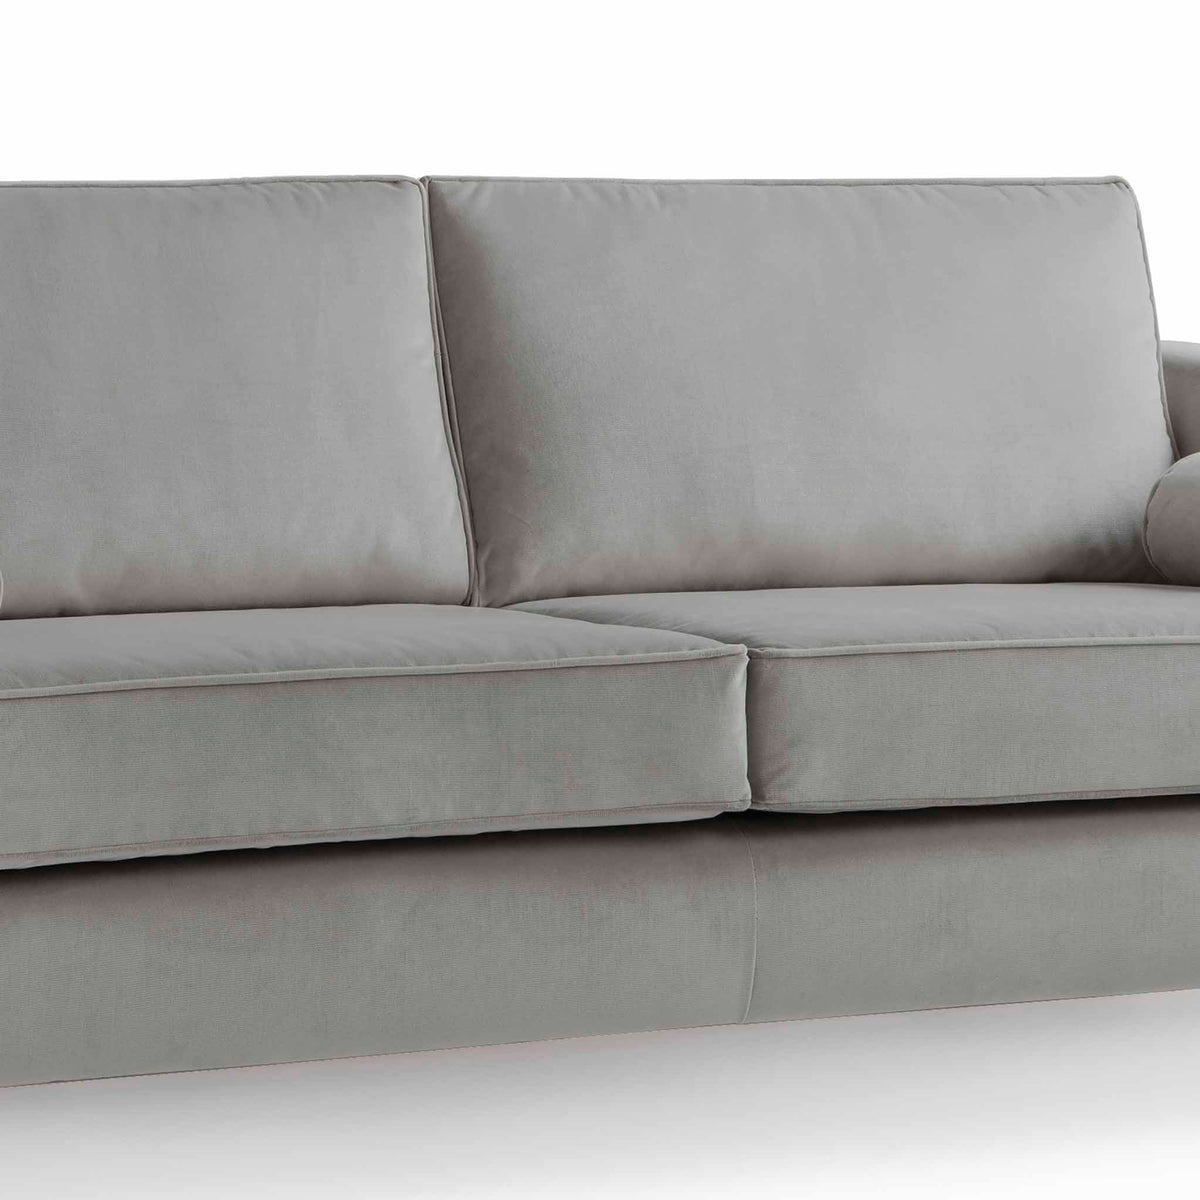 Ikon Grey 3 Seater Sofa - Close up of cushions